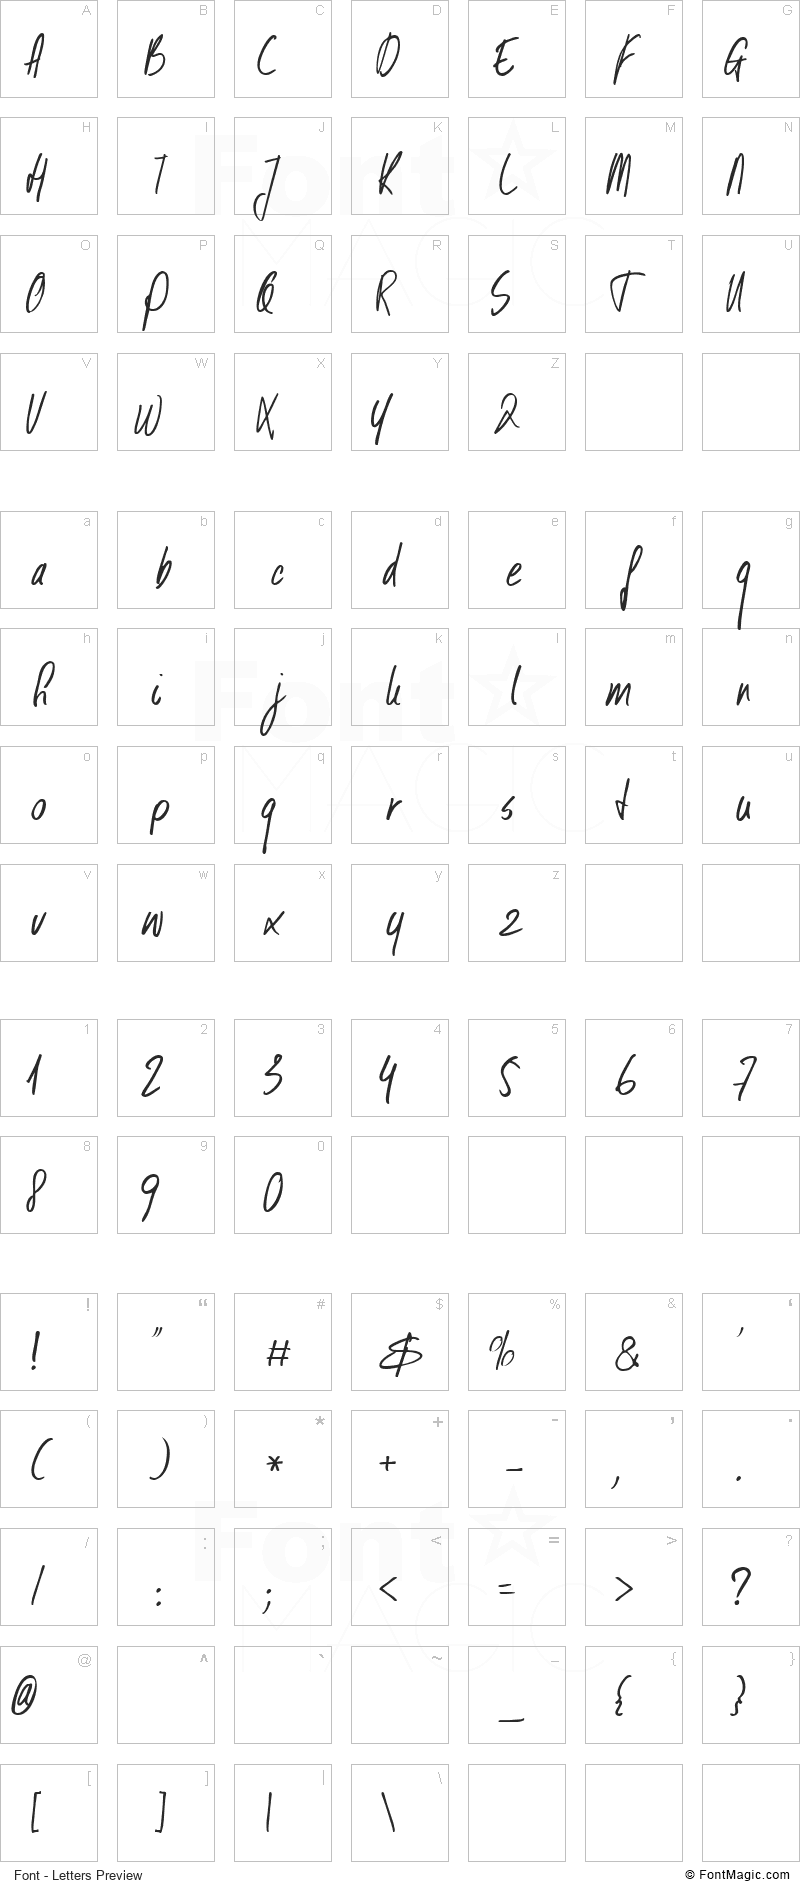 DK Kusukusu Font - All Latters Preview Chart